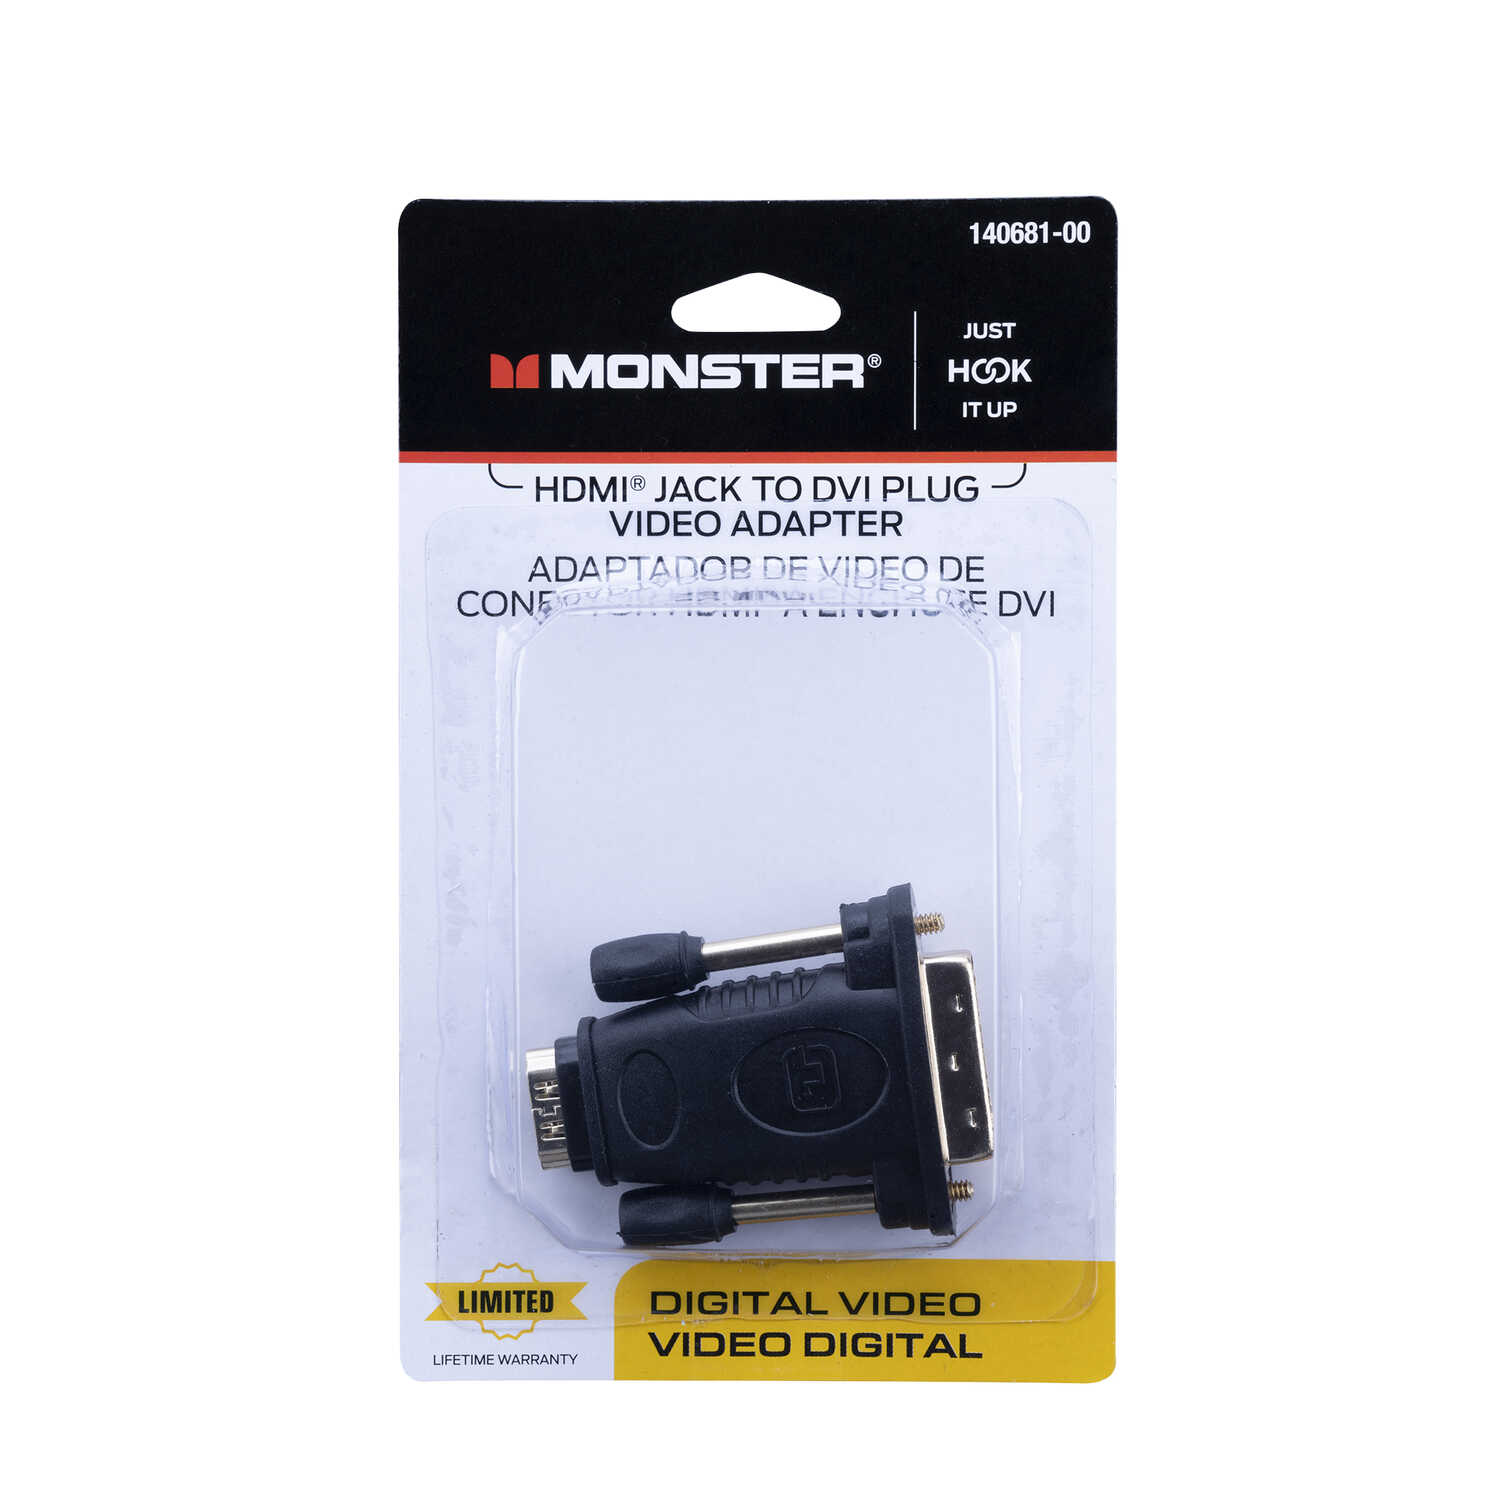 Monster Cable Hook It Up HDMI Adapter 1 each - Ace Hardware